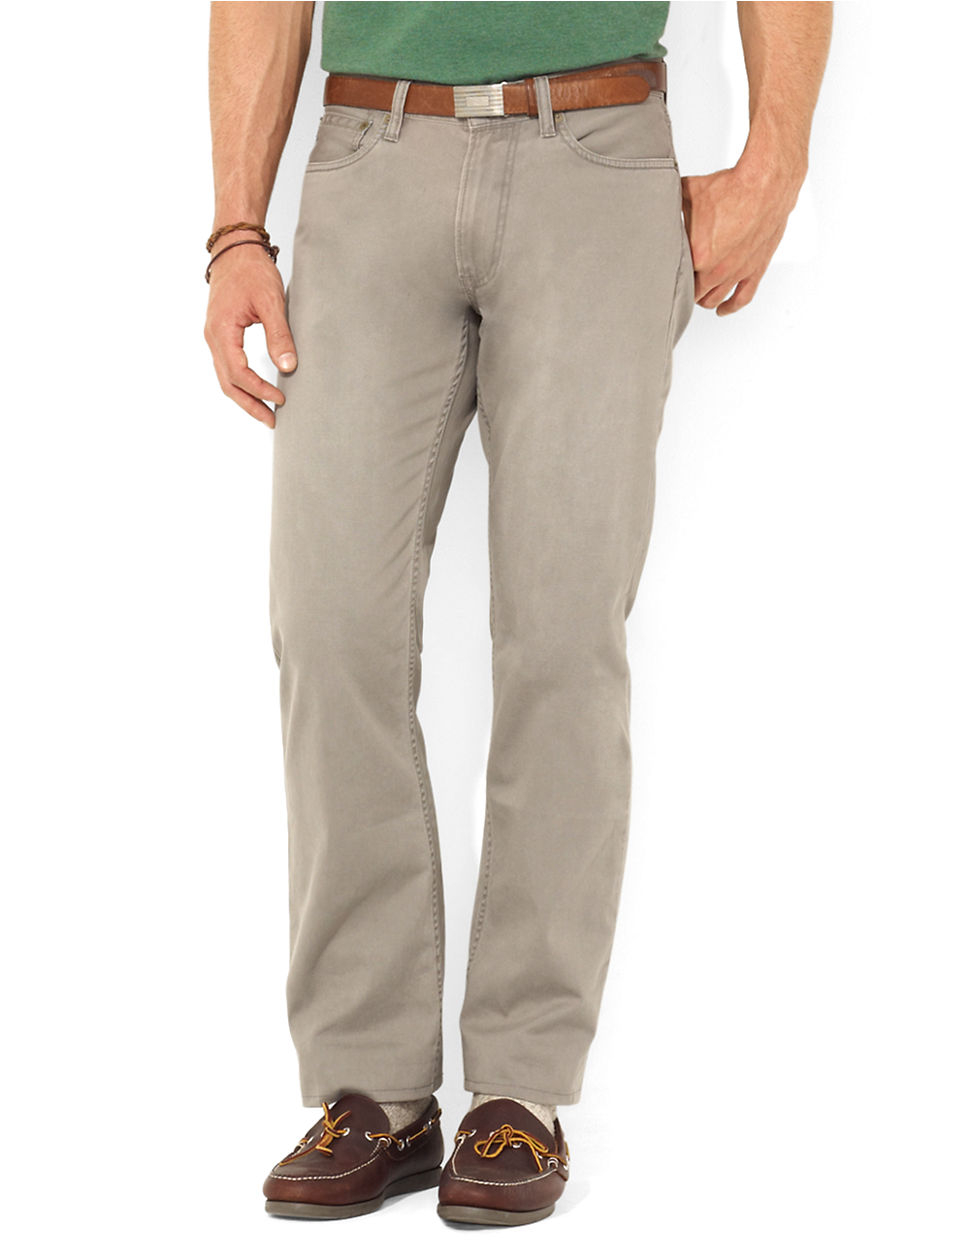 chino online dating Comfortable twill pants with a relaxed fit through the hip and thigh, featuring  hollister epic flex stretch, side pockets and contrast interior waistband, imported.